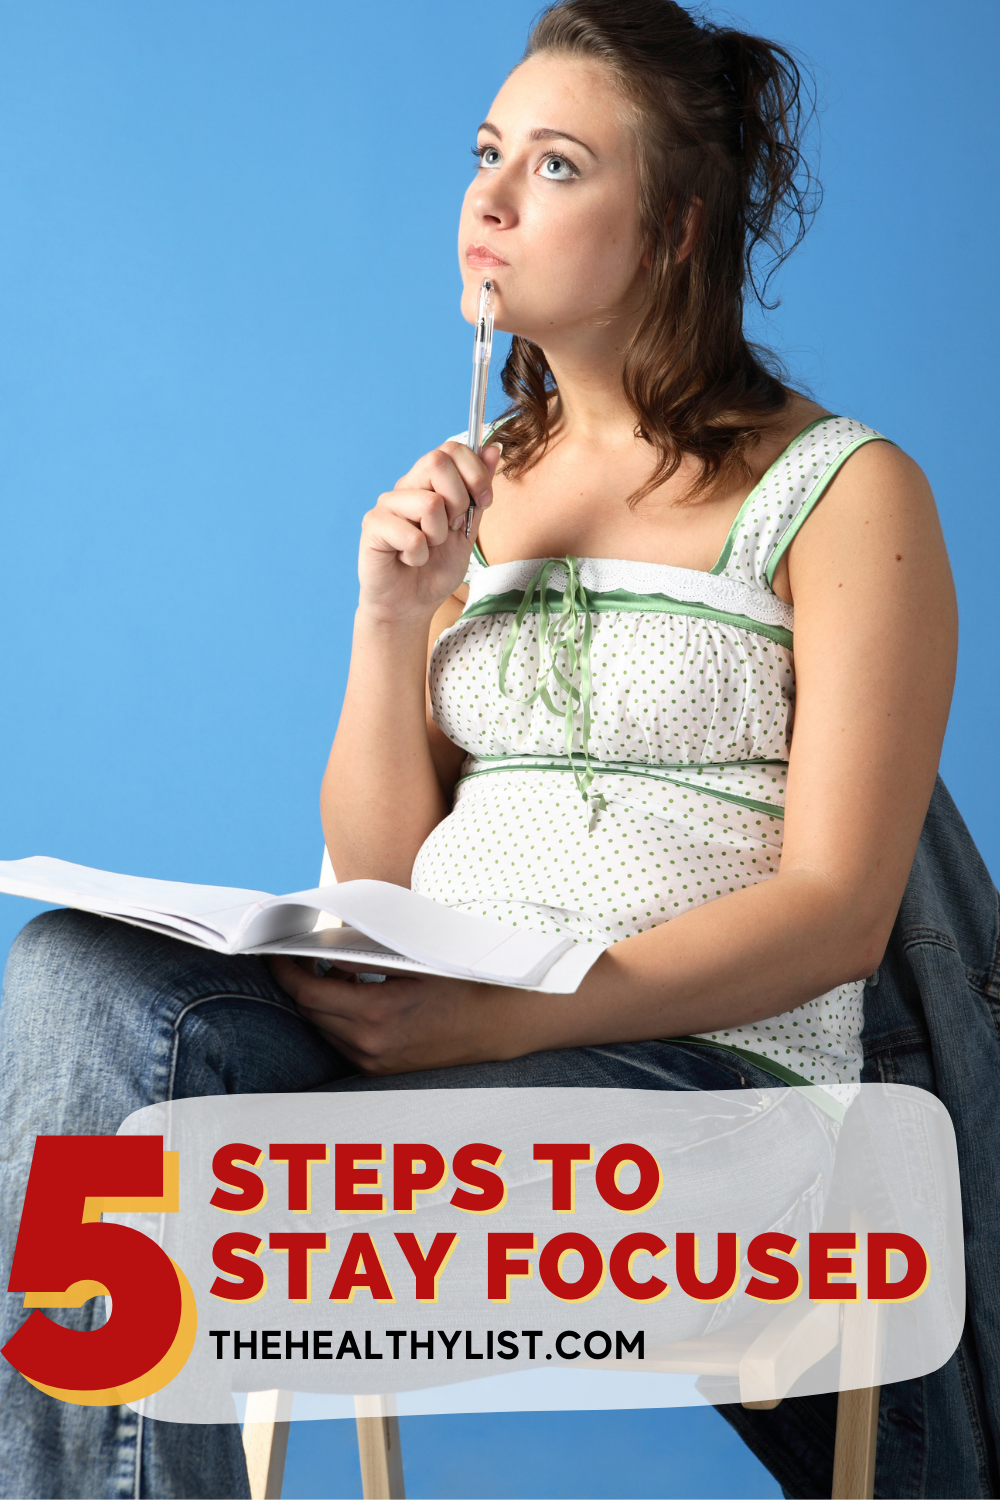 5 Steps to Stay Focused